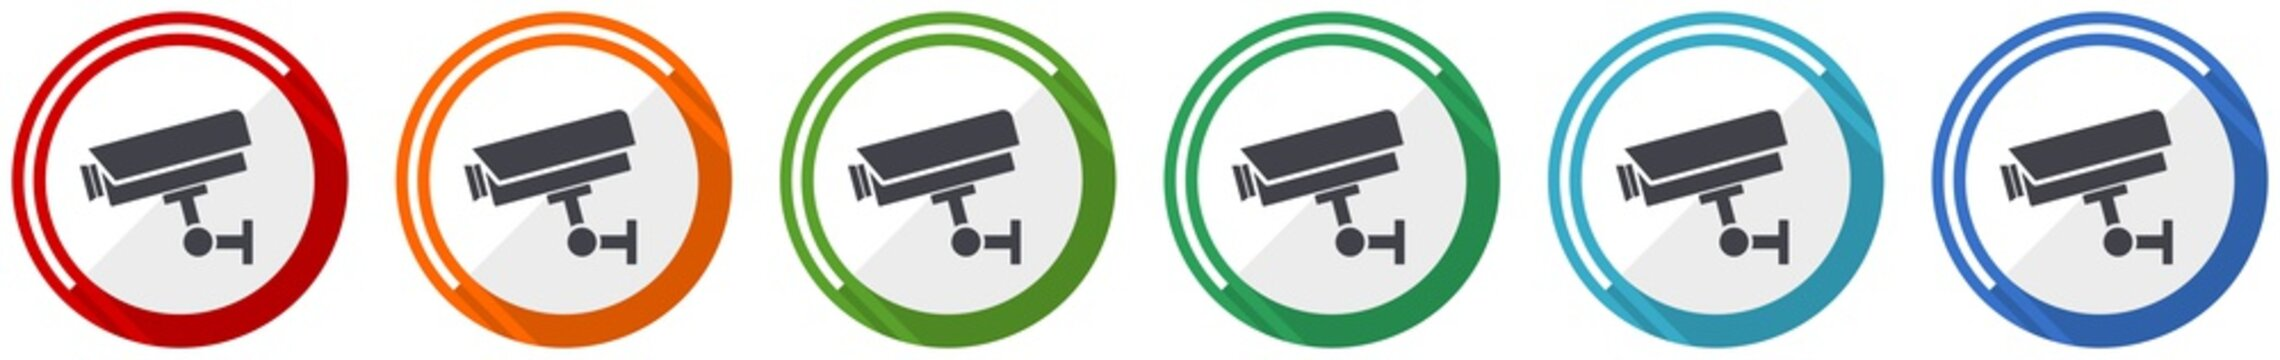 Cctv camera icon set, flat design vector illustration in 6 colors options for webdesign and mobile applications